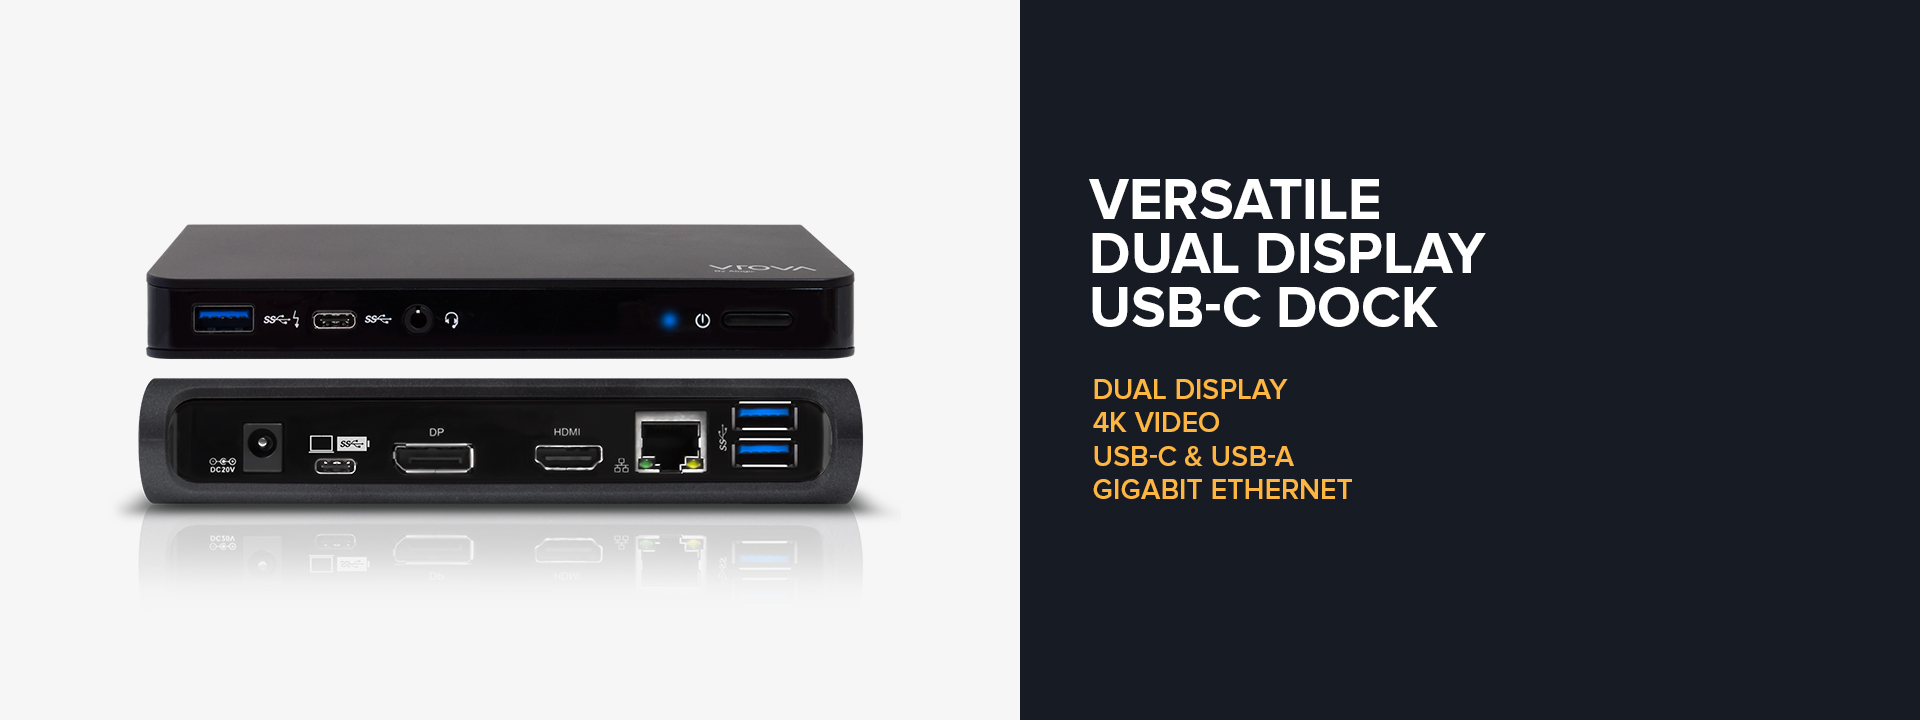 UCDHP1 Alogic USB-C Dual Display Docking Station with Power Delivery - VROVA Series